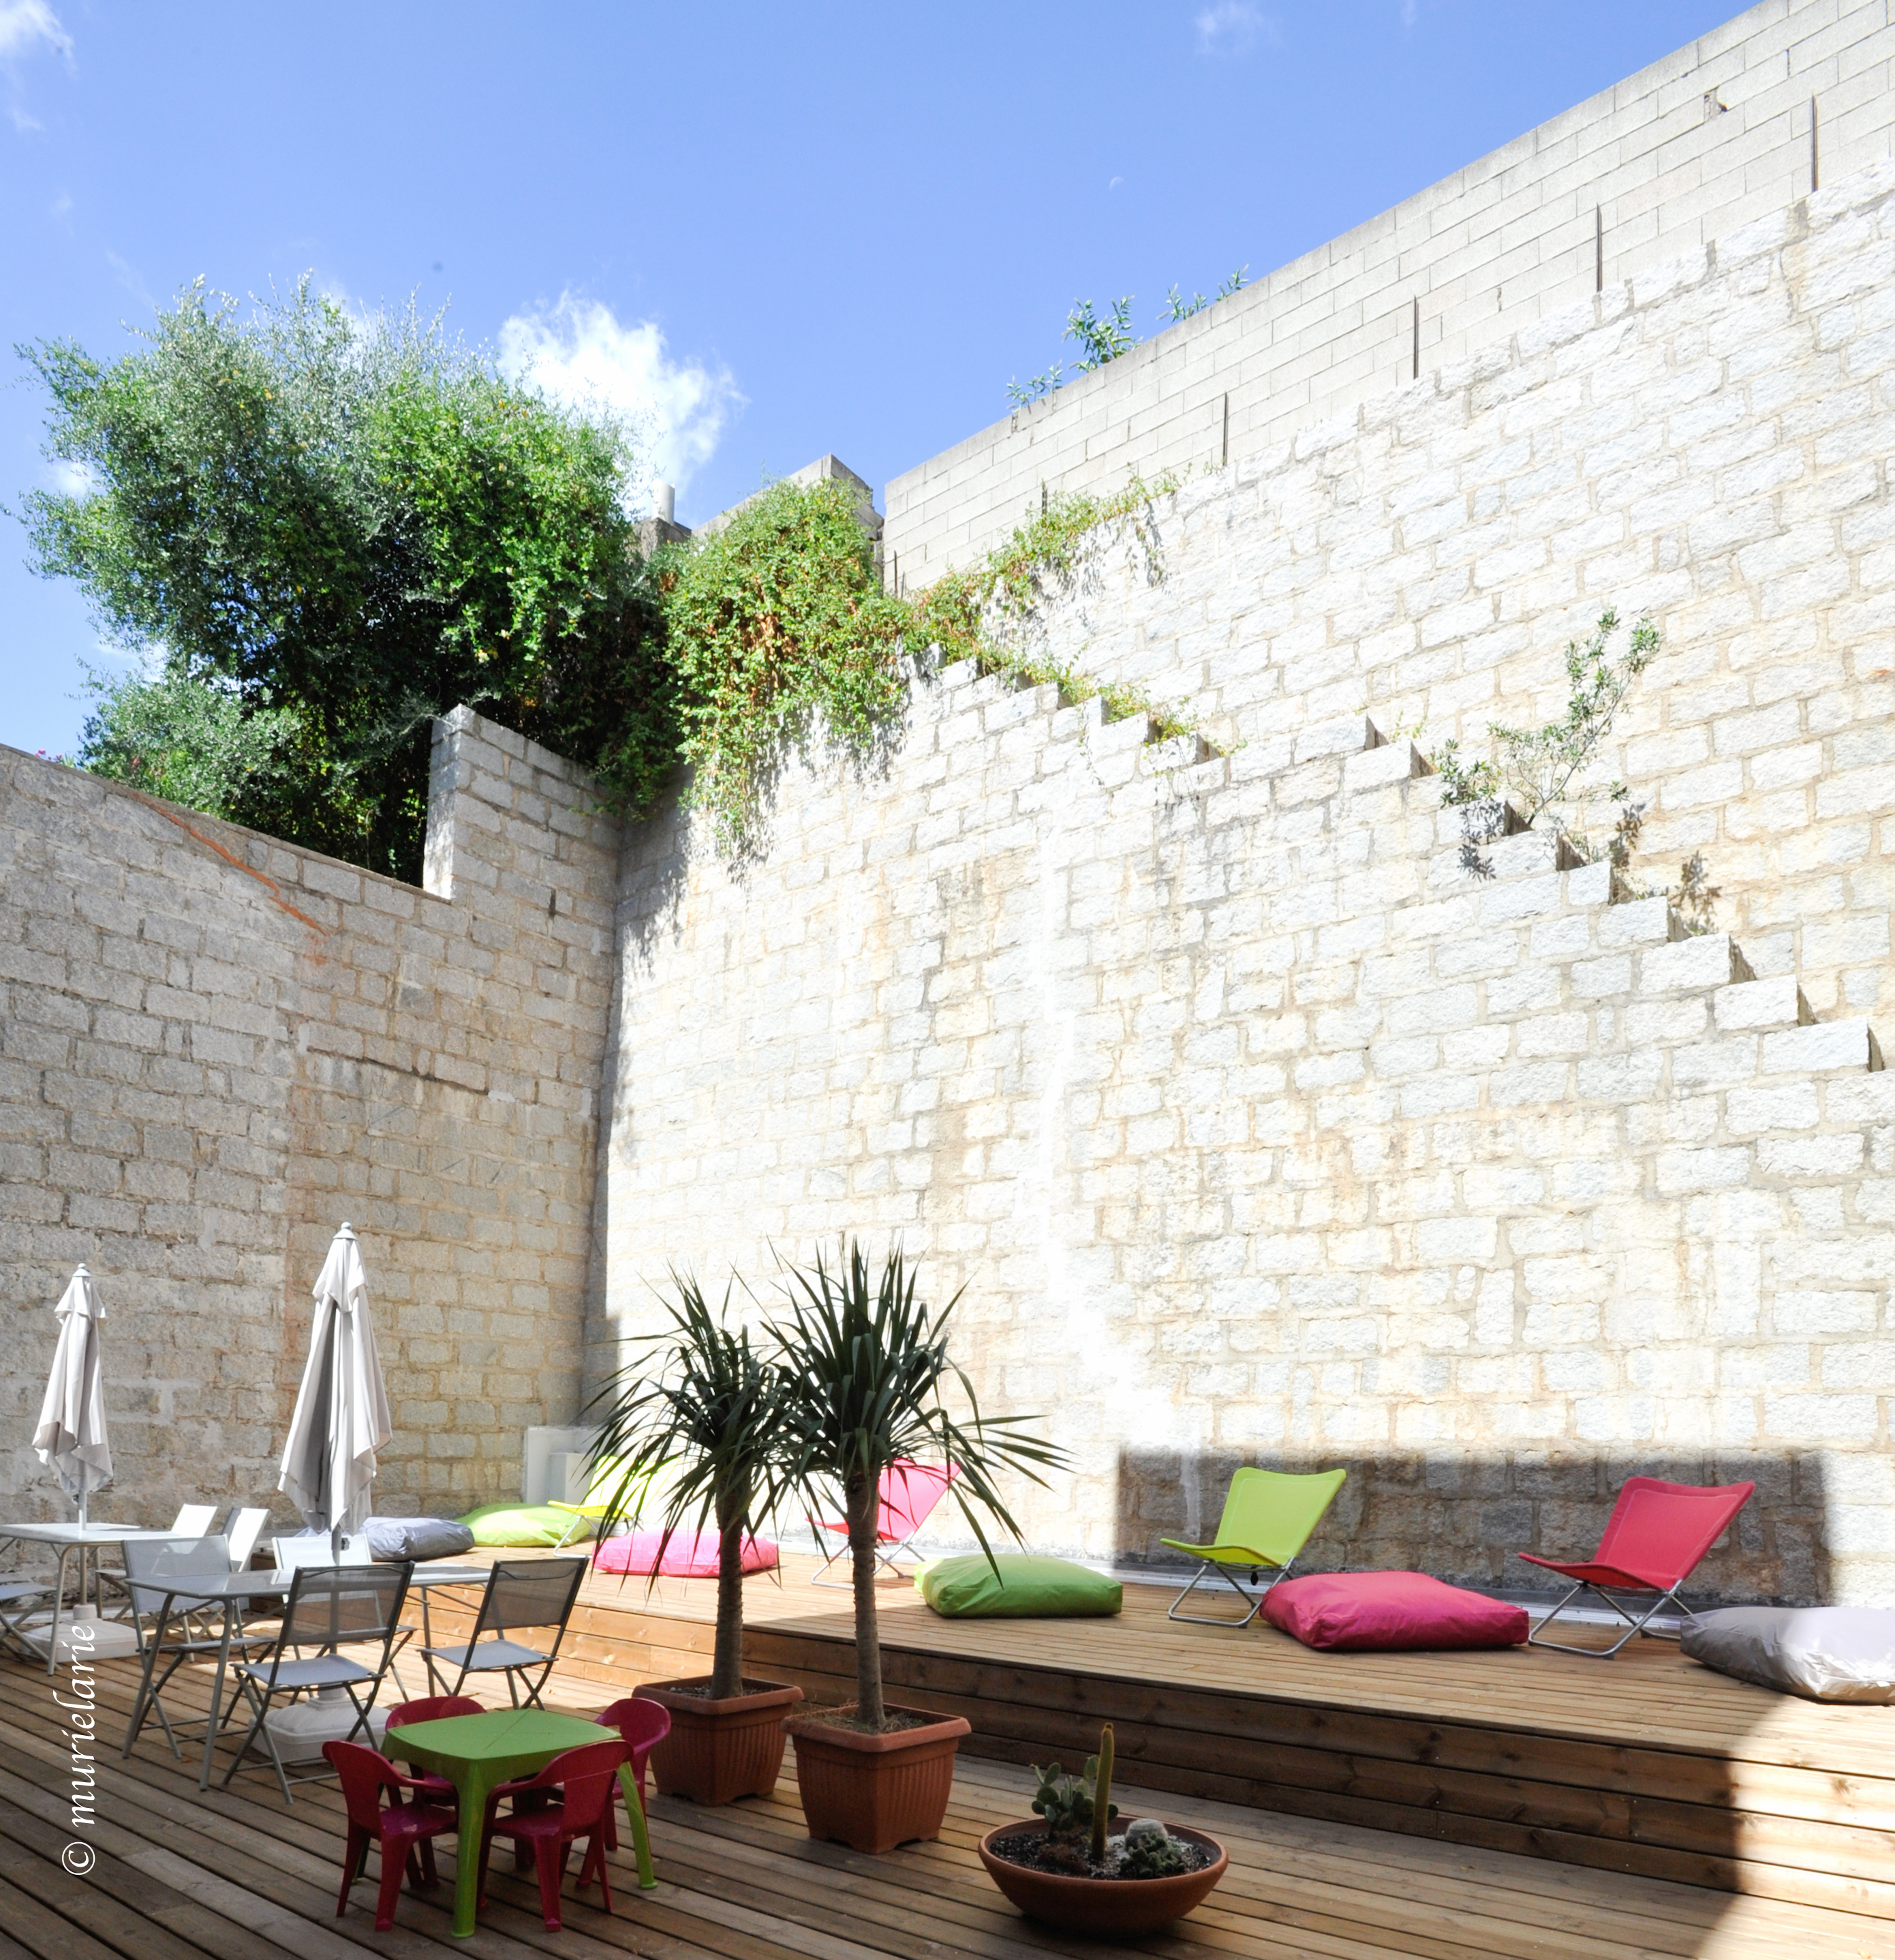 Residence hoteliere corse sud for Residence hoteliere